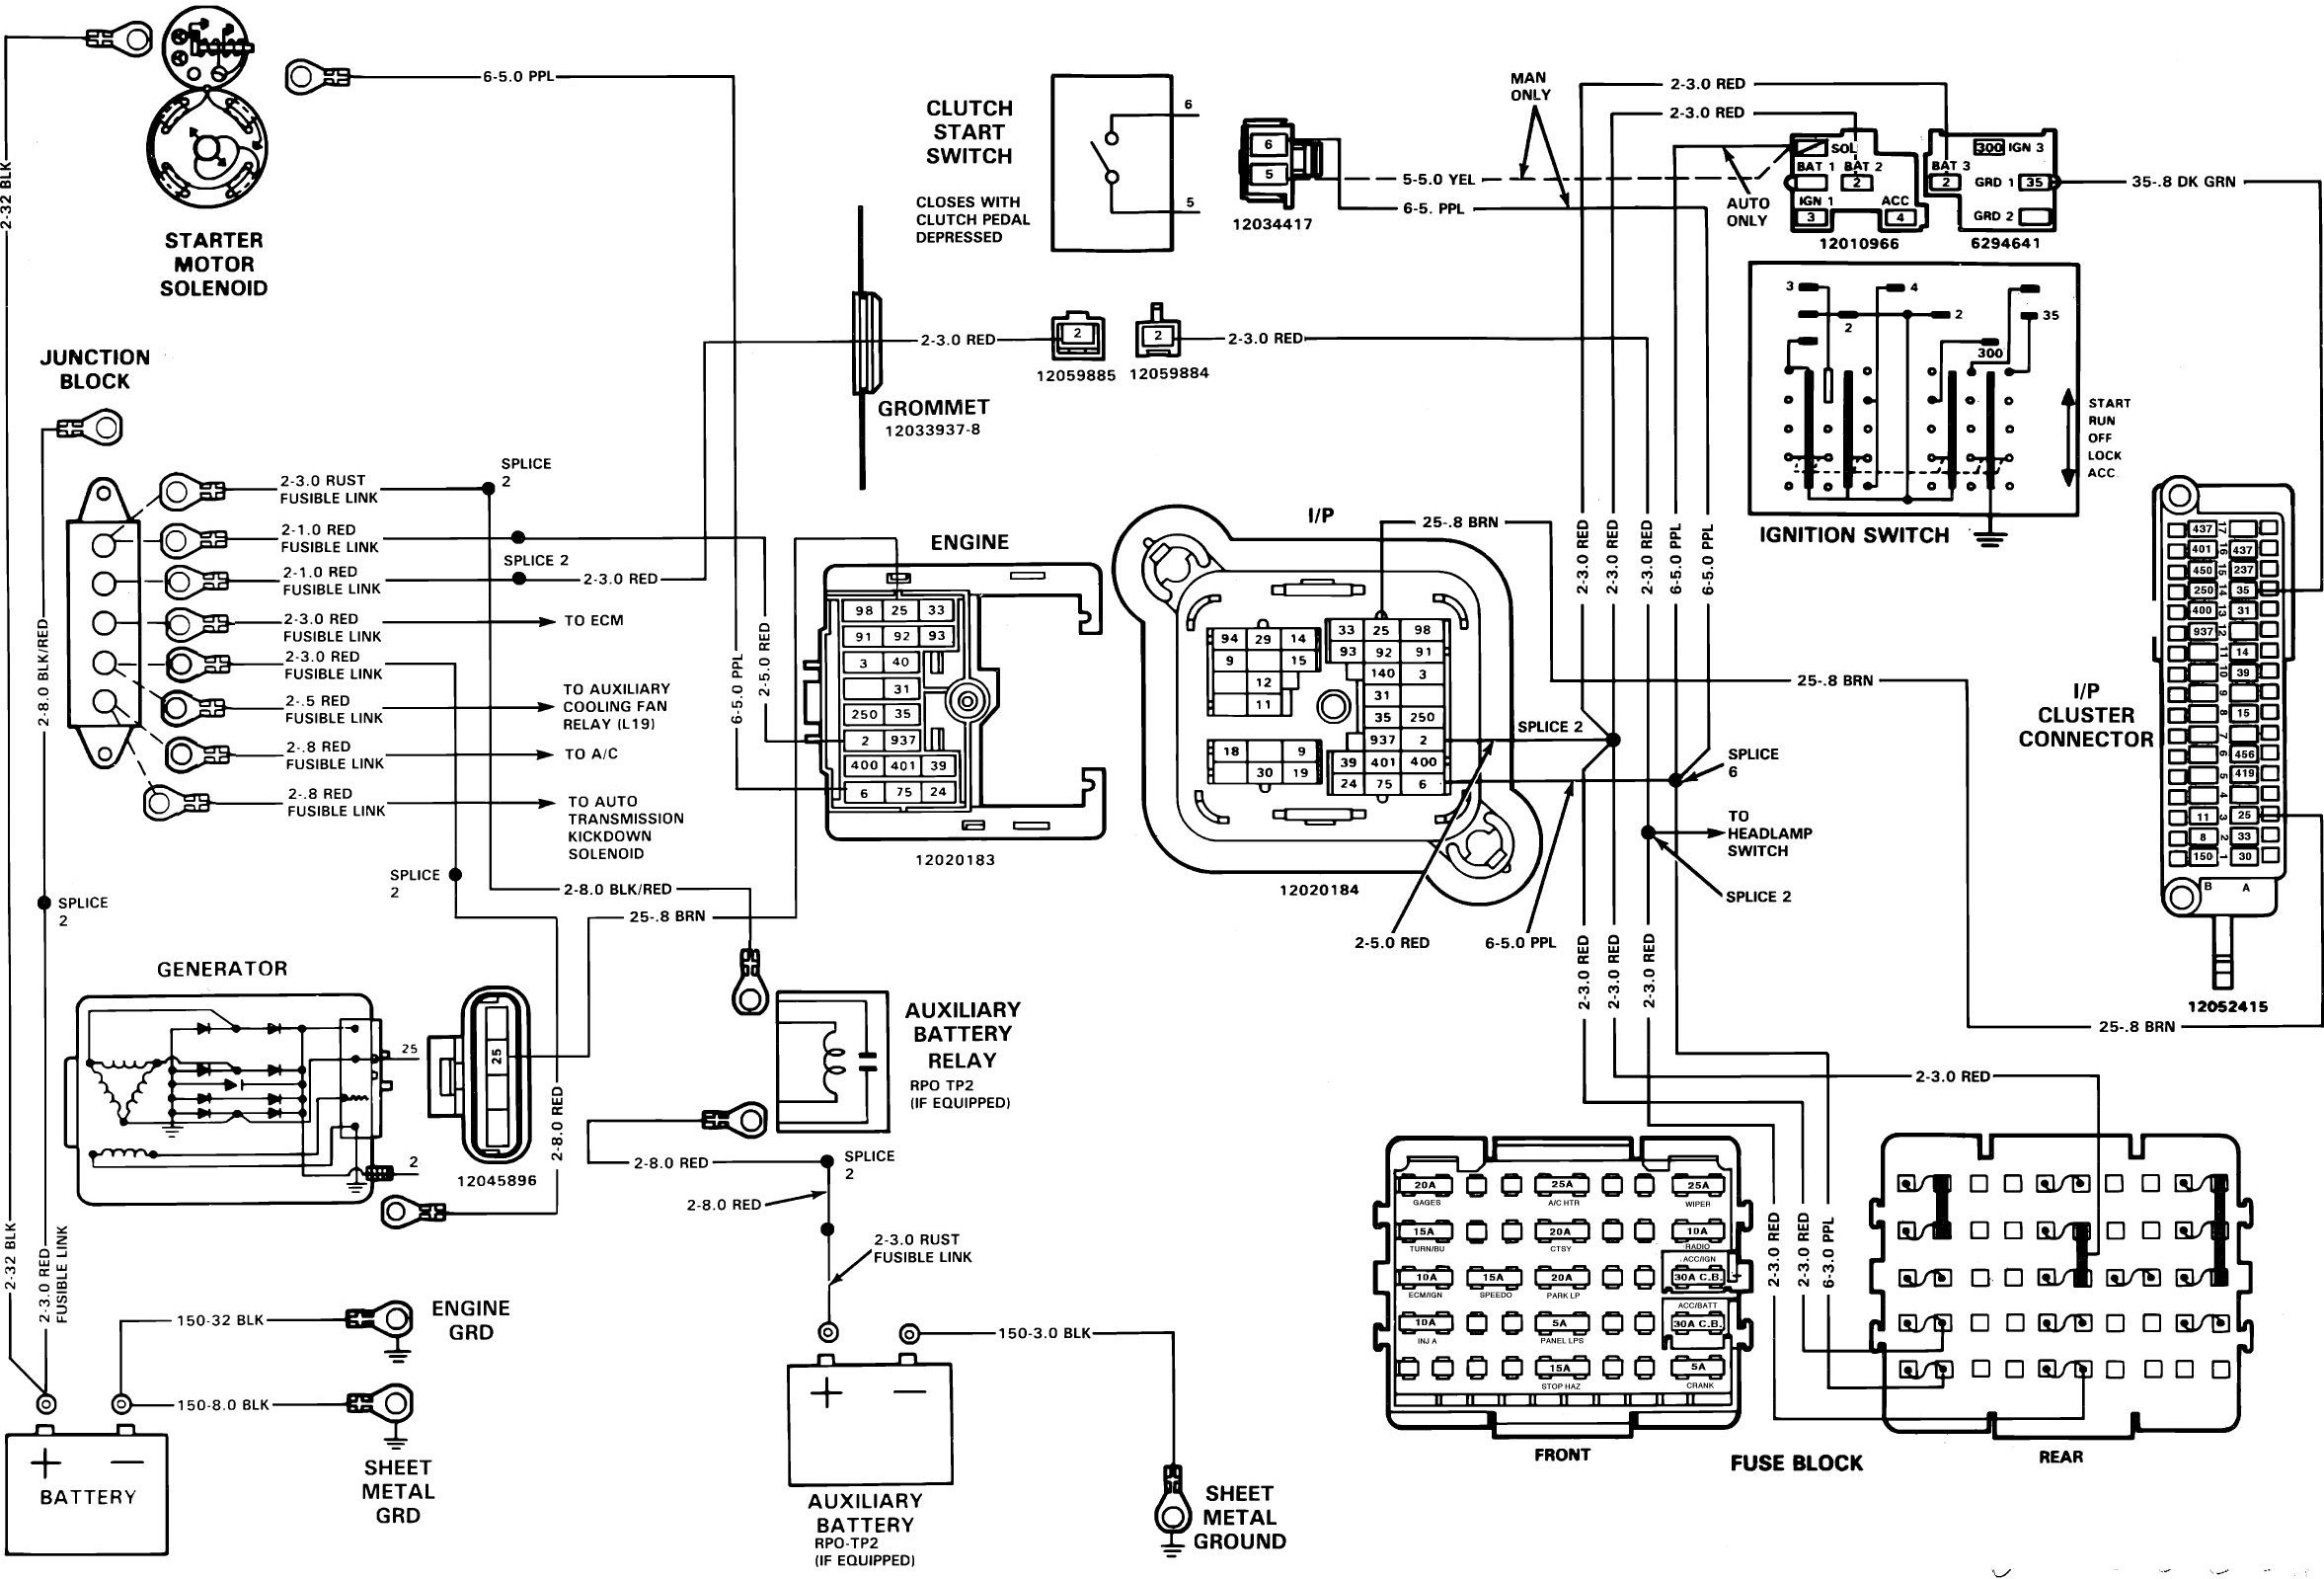 Truck Engine Diagram Porsche 944 Oil Flow Transaxles Related Post